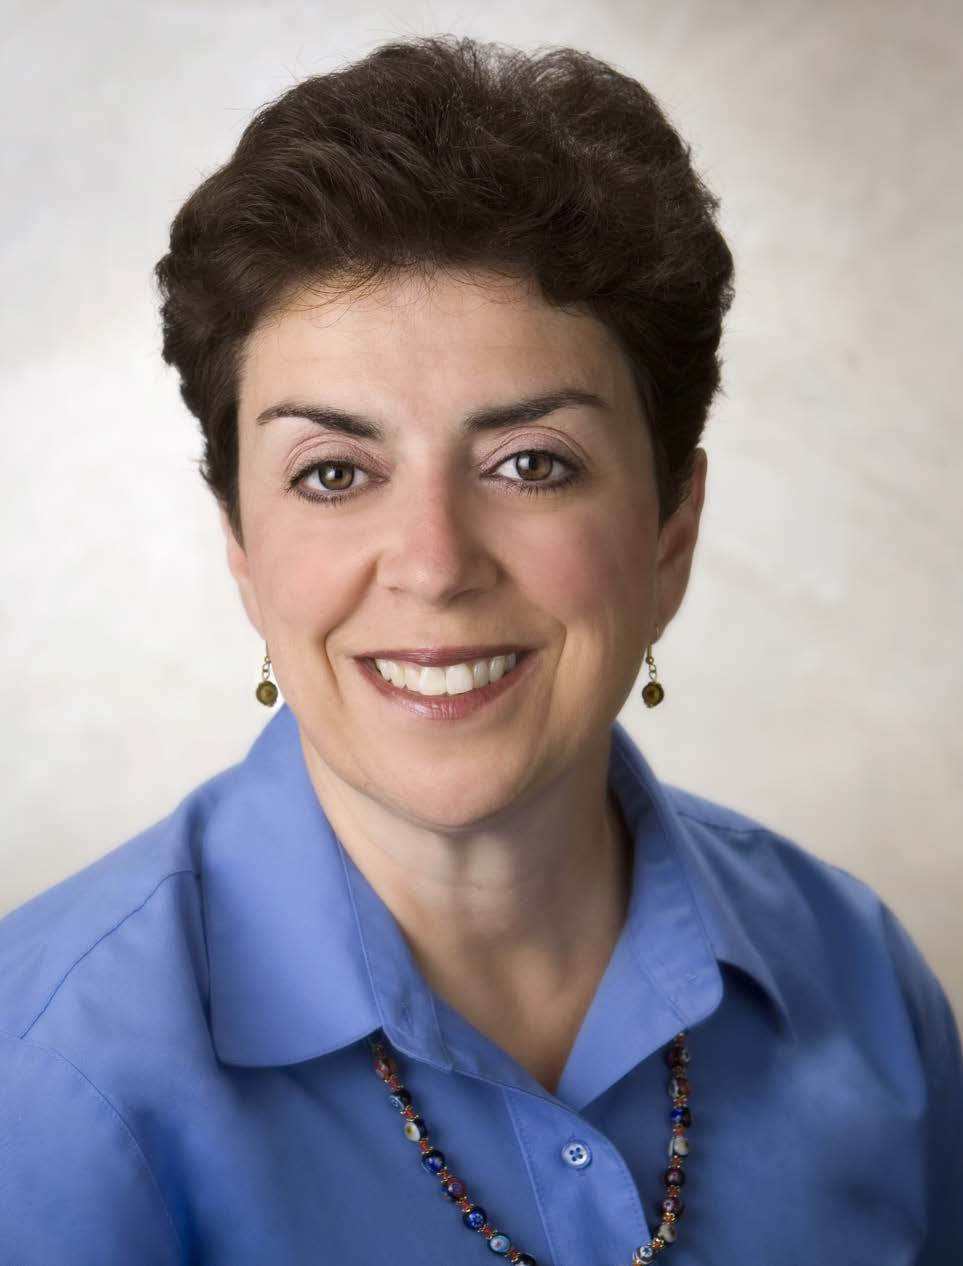 Dr. Clara Spatafore was awarded a top honor in endodontics.